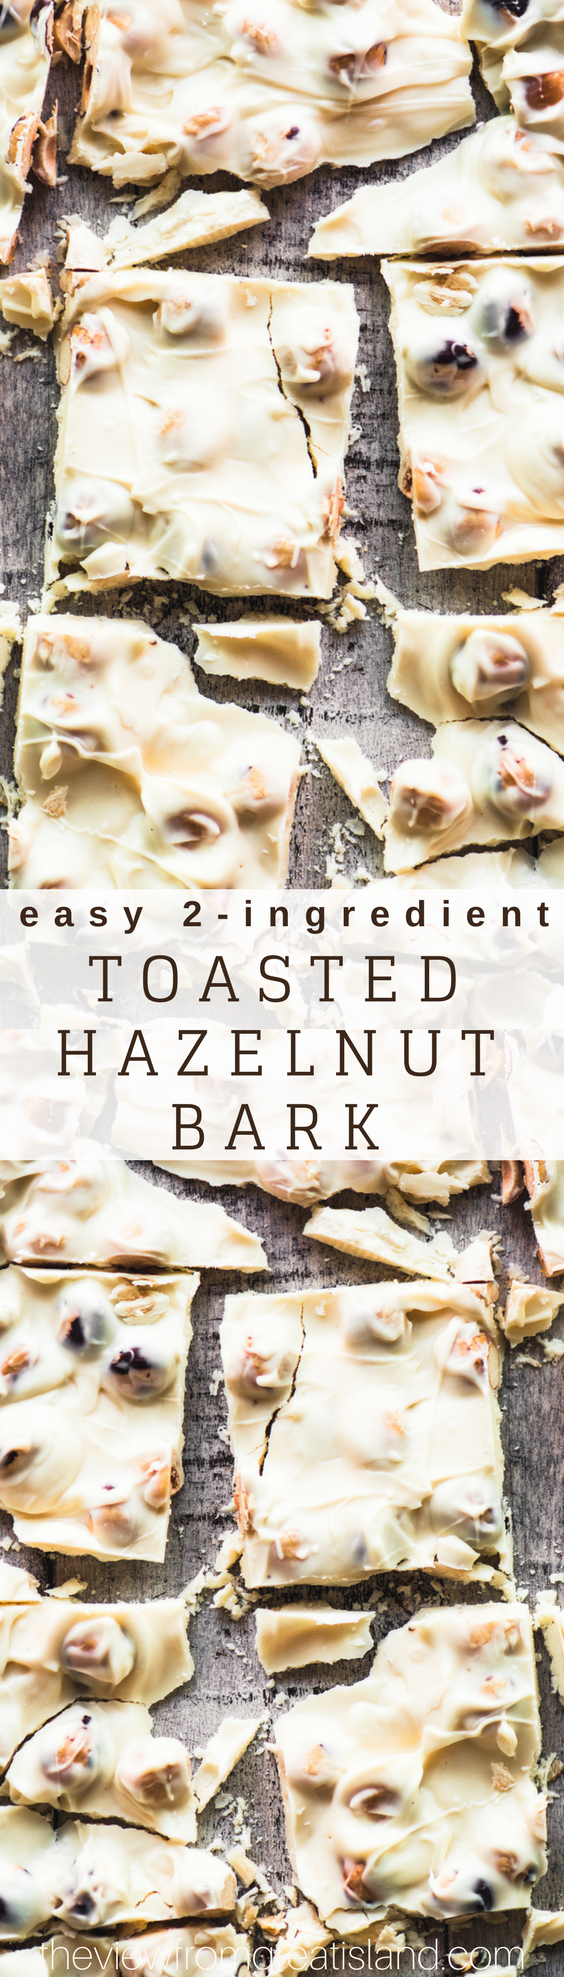 Easy 2 Ingredient Toasted Hazelnut Bark ~ don't let the 2 ingredient part mislead you...this easy chocolate bark is a killer homemade candy worthy of those at the tippy-top of your holiday gift list this season. #candy #homemadecandy #chocolate #whitechocolate #foodgift #holidayfoodgift #easyfoodgift #bestchocolatebark #hazelnutbark #hazelnuts